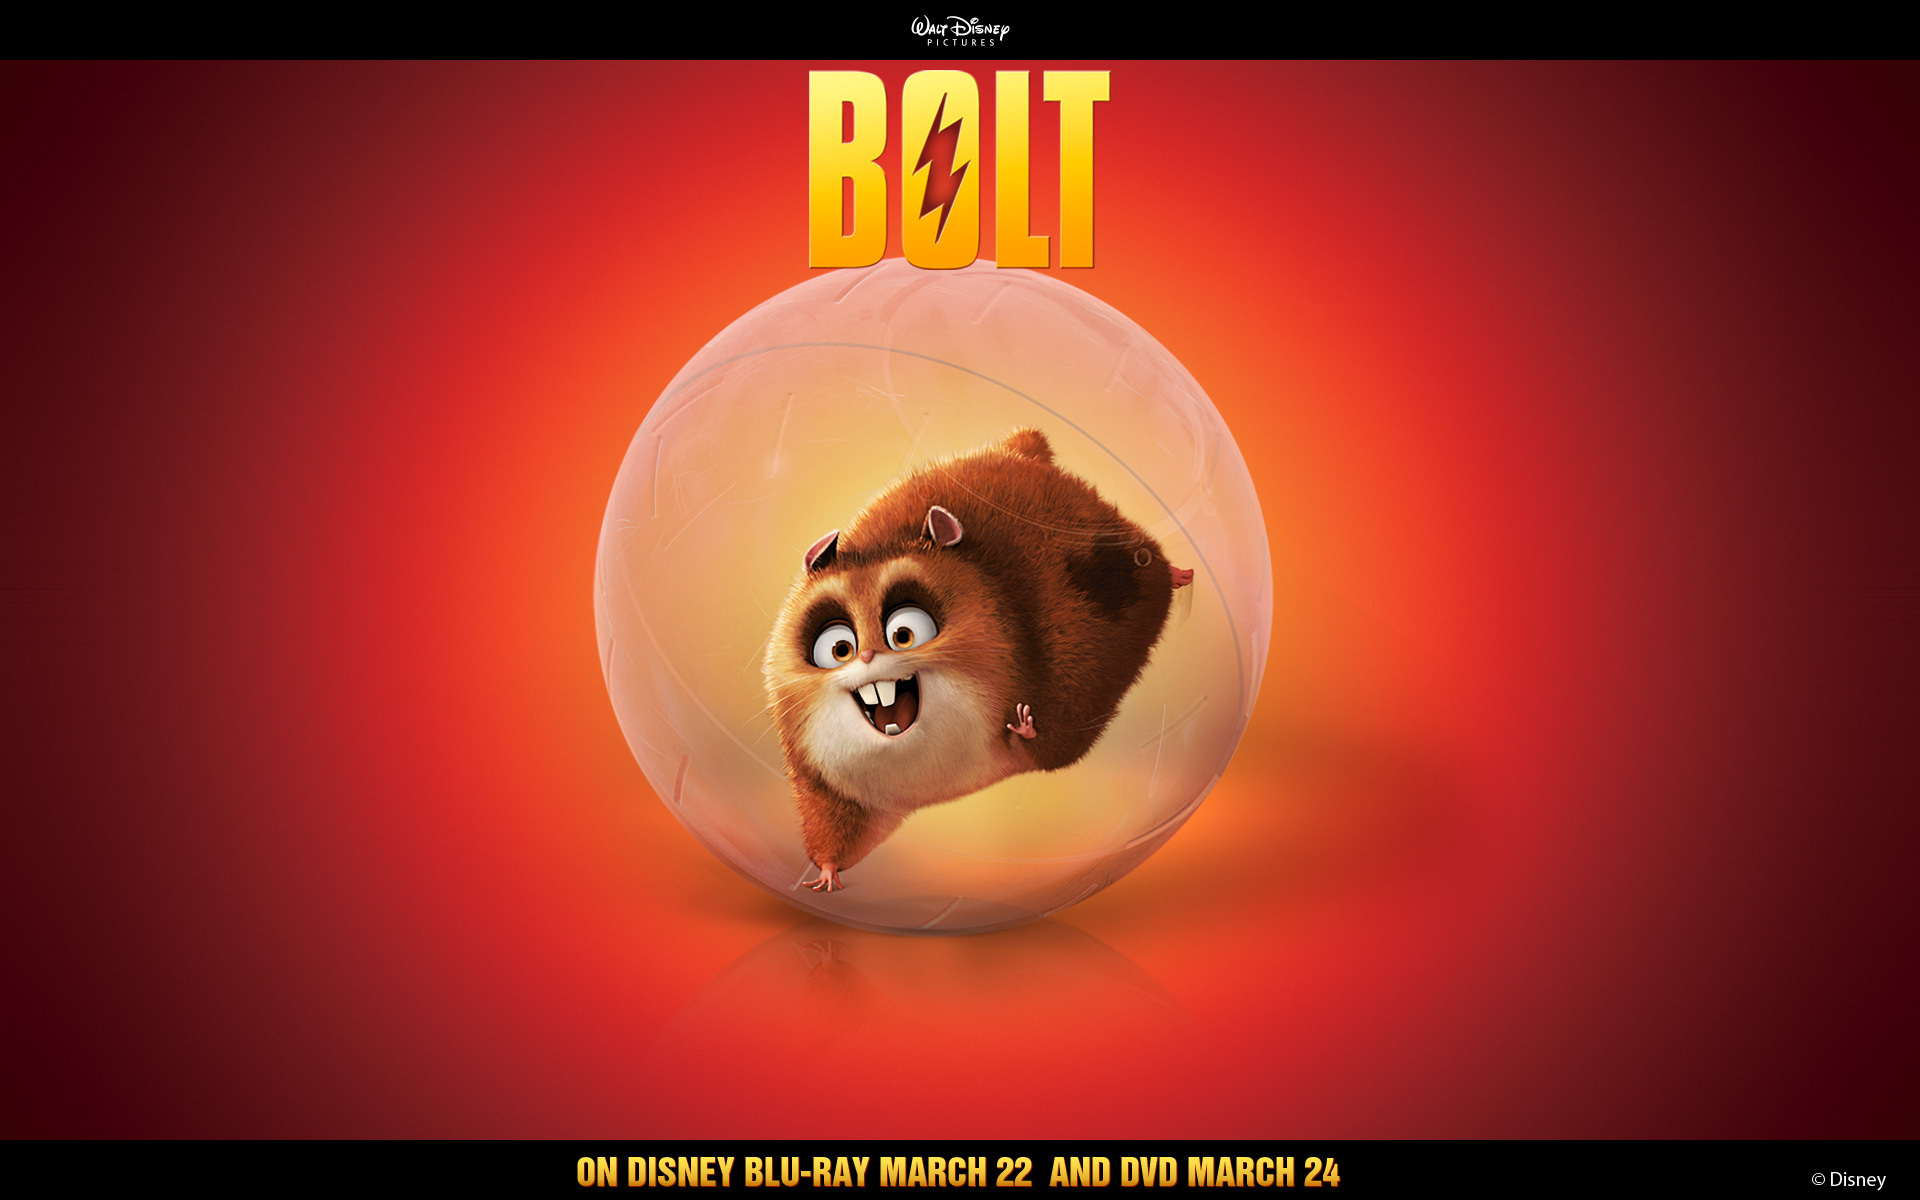 Rhino Solo Wallpaper - Disney's Bolt 1920x1200